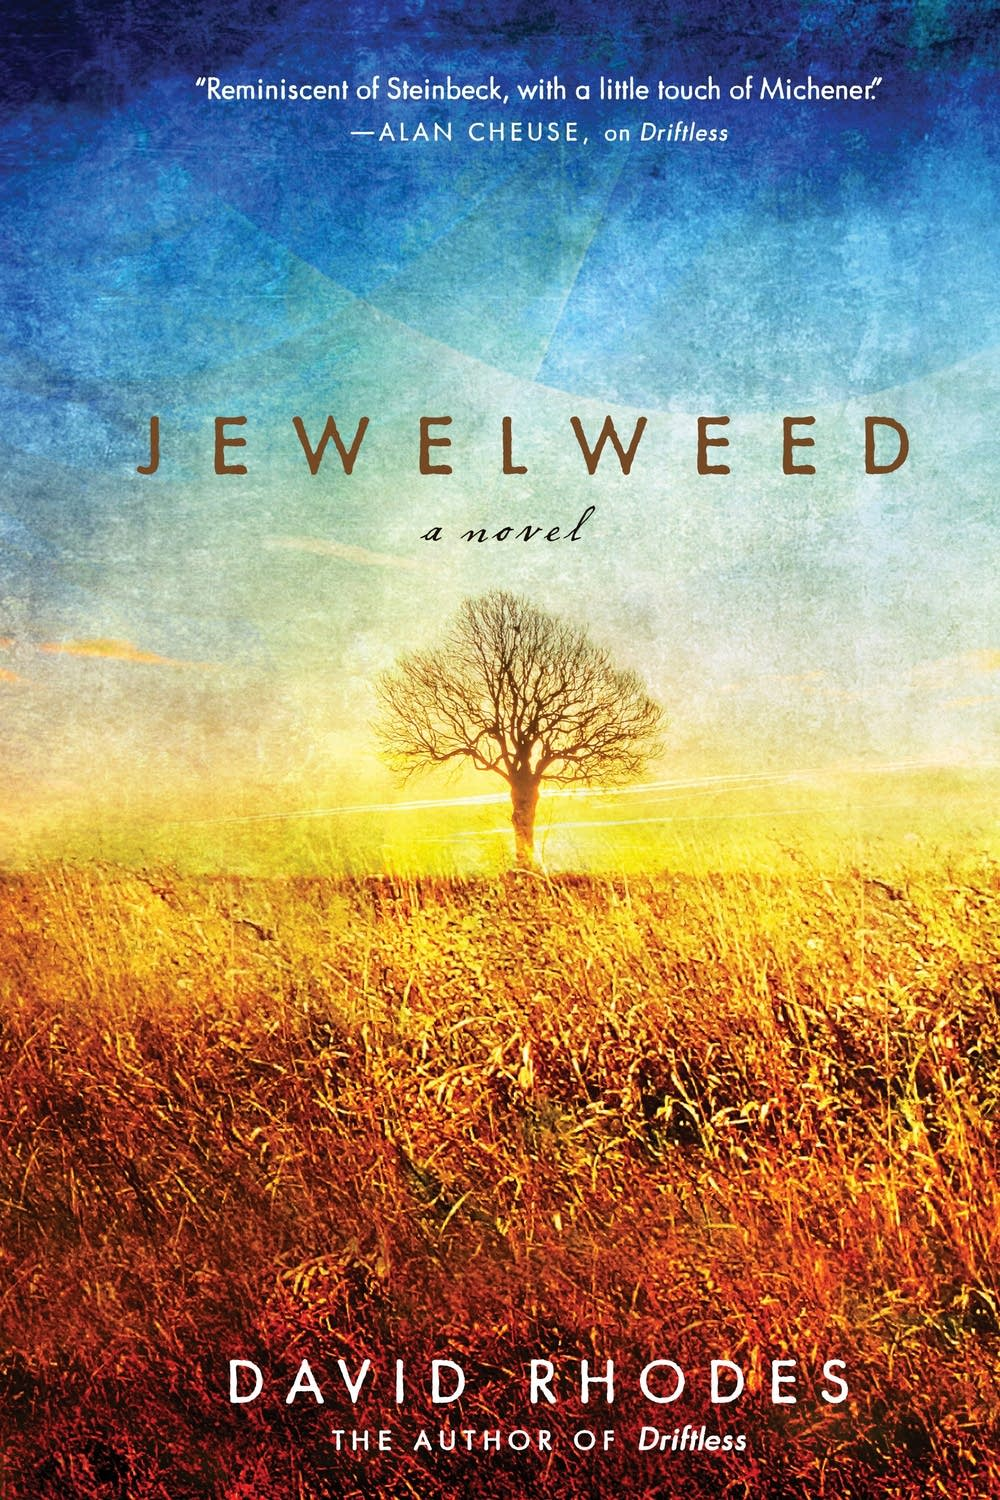 'Jewelweed' by David Rhodes